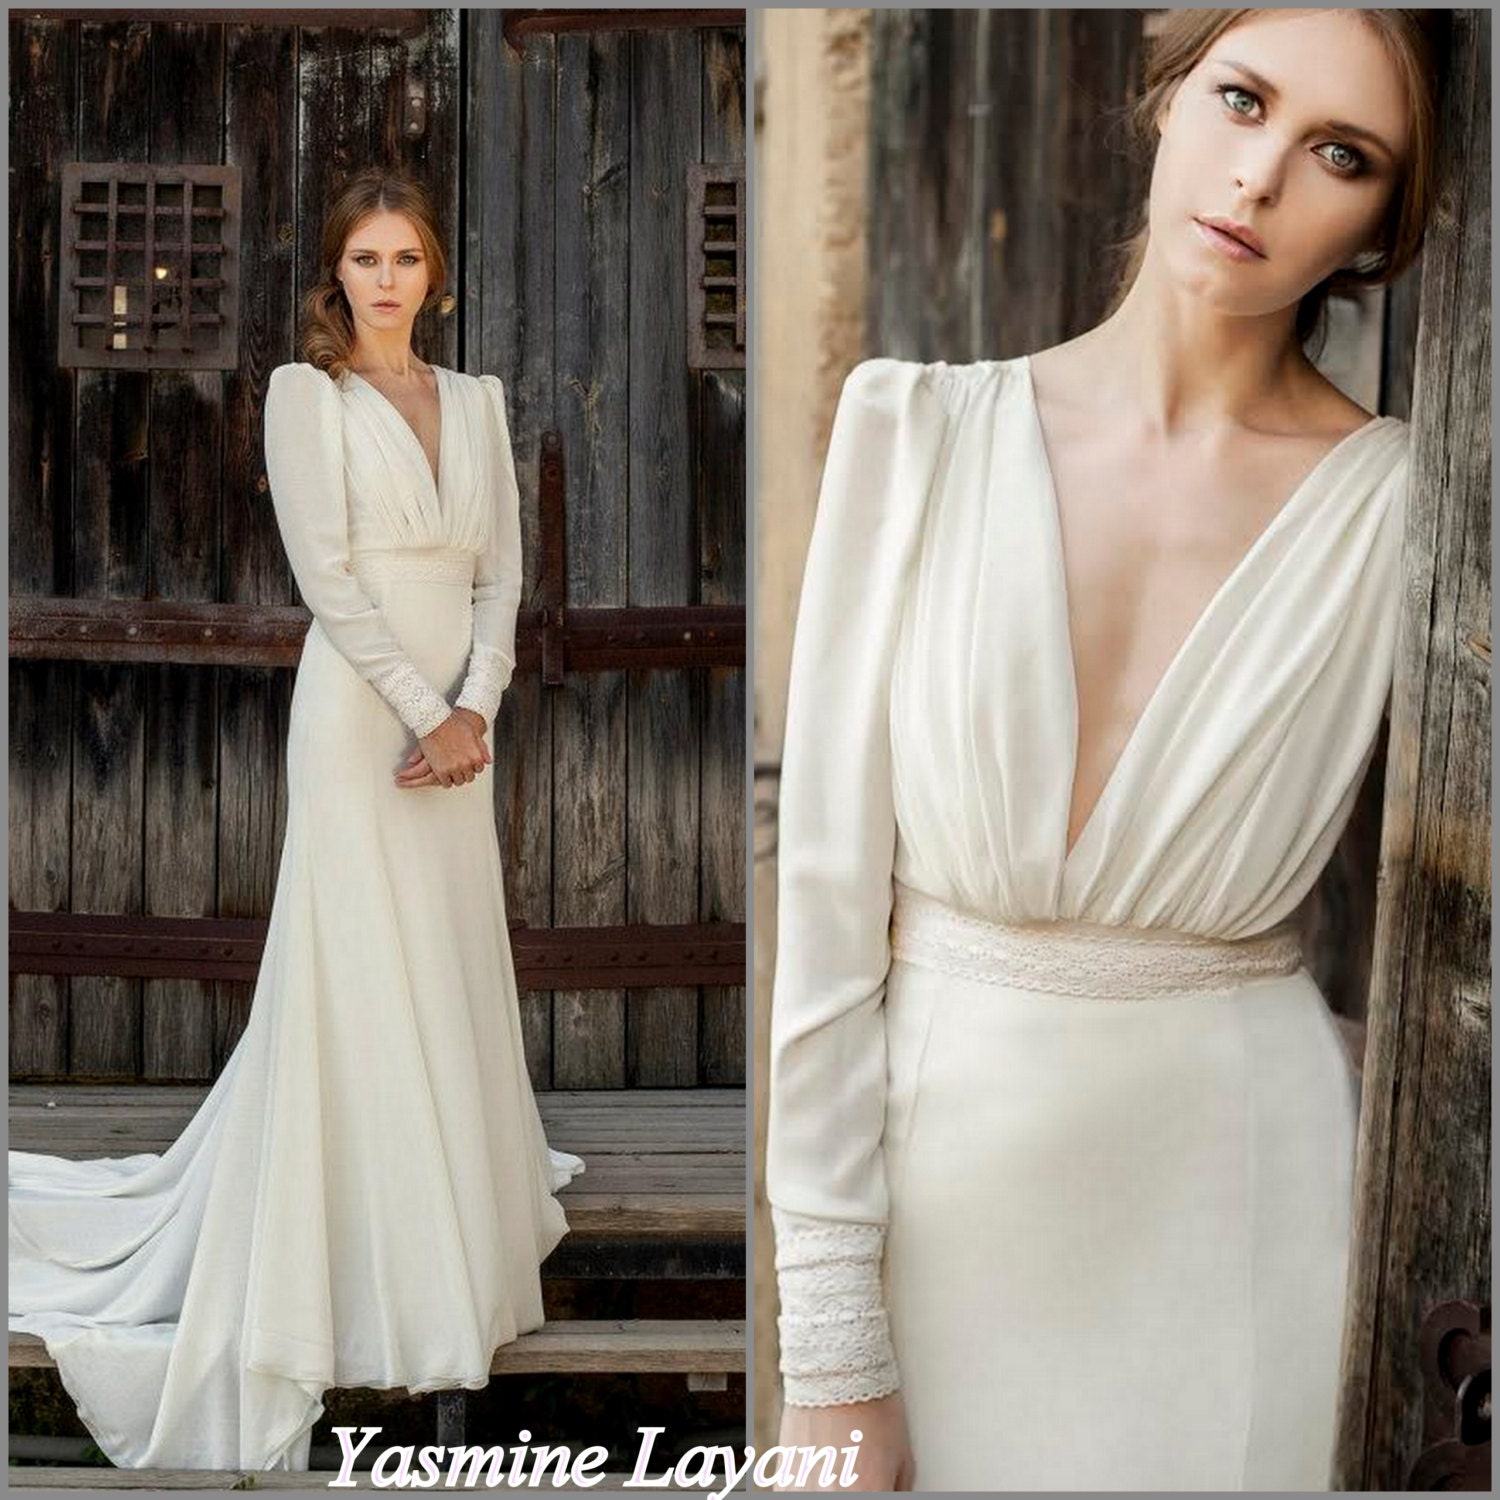 Long sleeve wedding dress chiffon wedding dress by for Long sleeve chiffon wedding dress